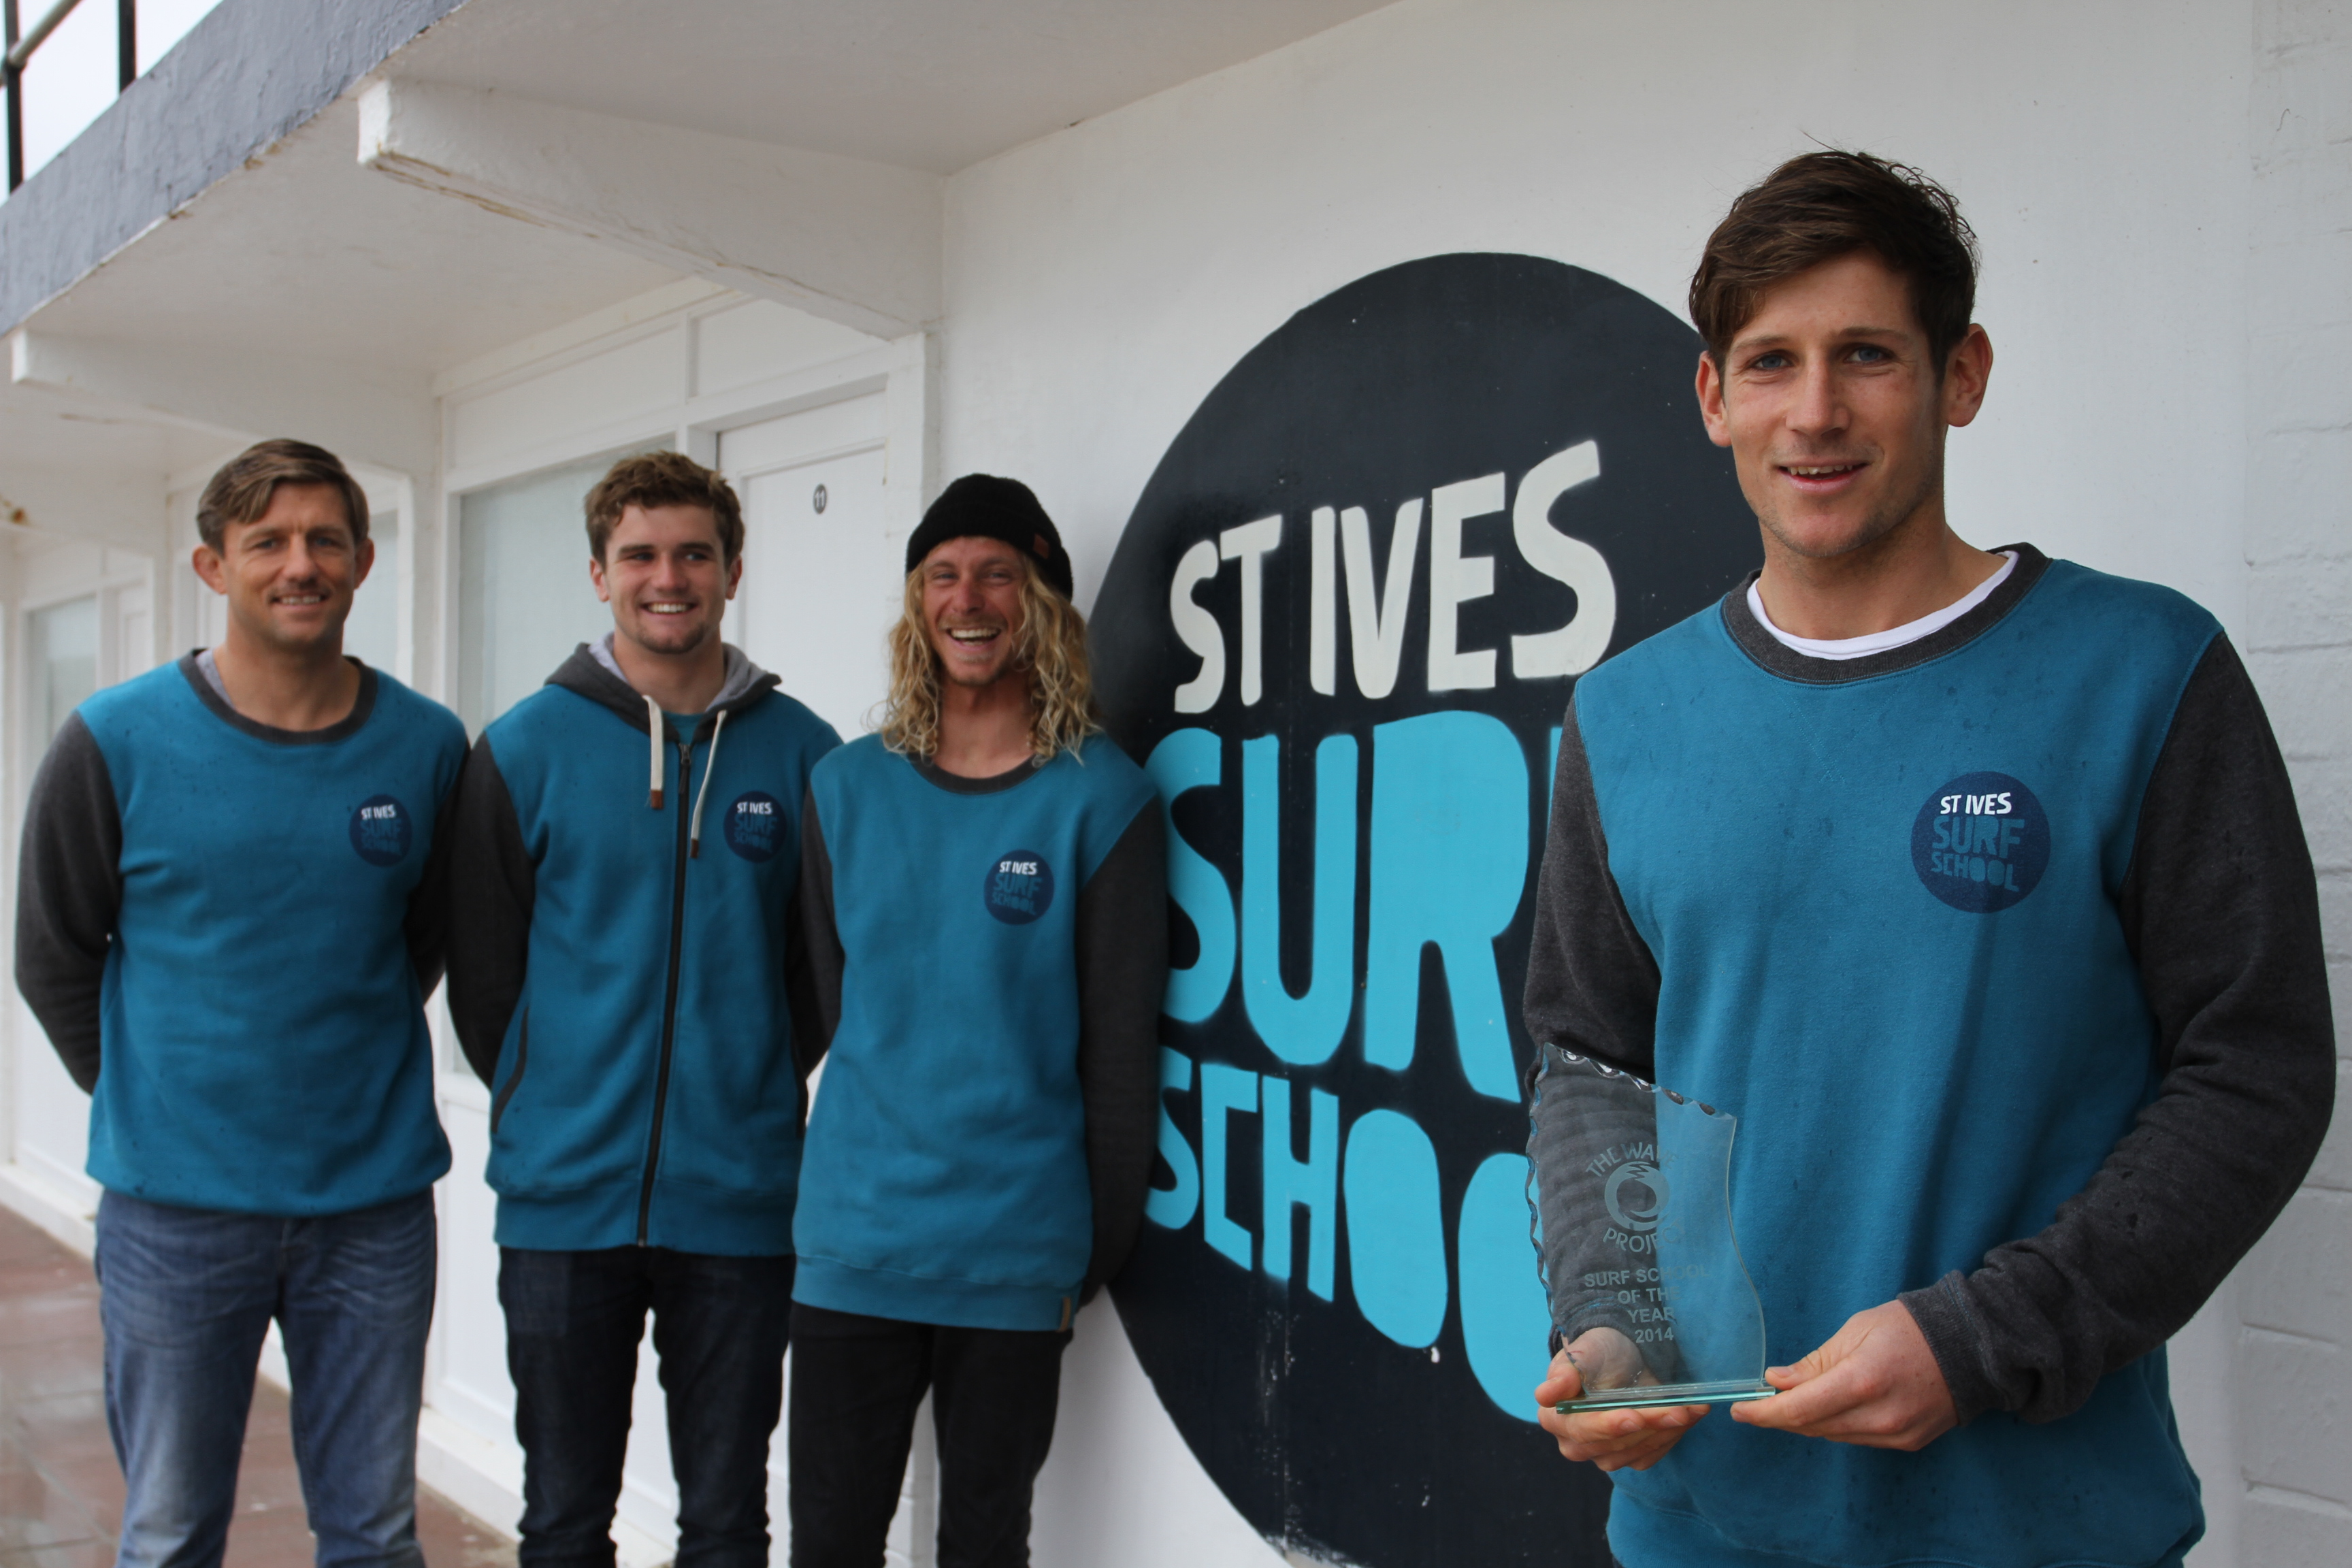 Award for St. Ives Surf School!